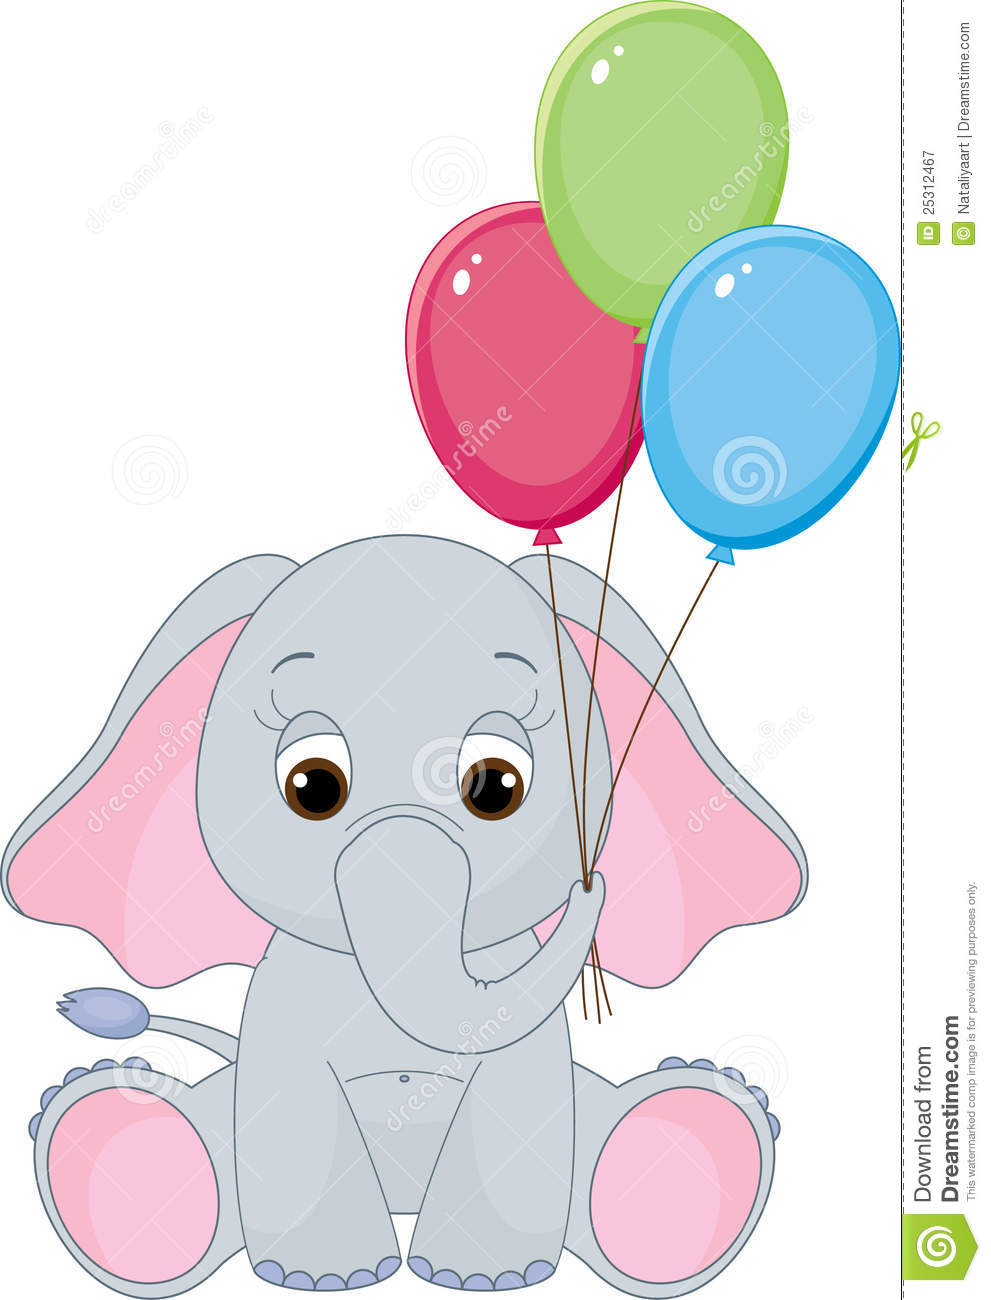 Cute Baby Elephant Stock Vector Image Of Colorful